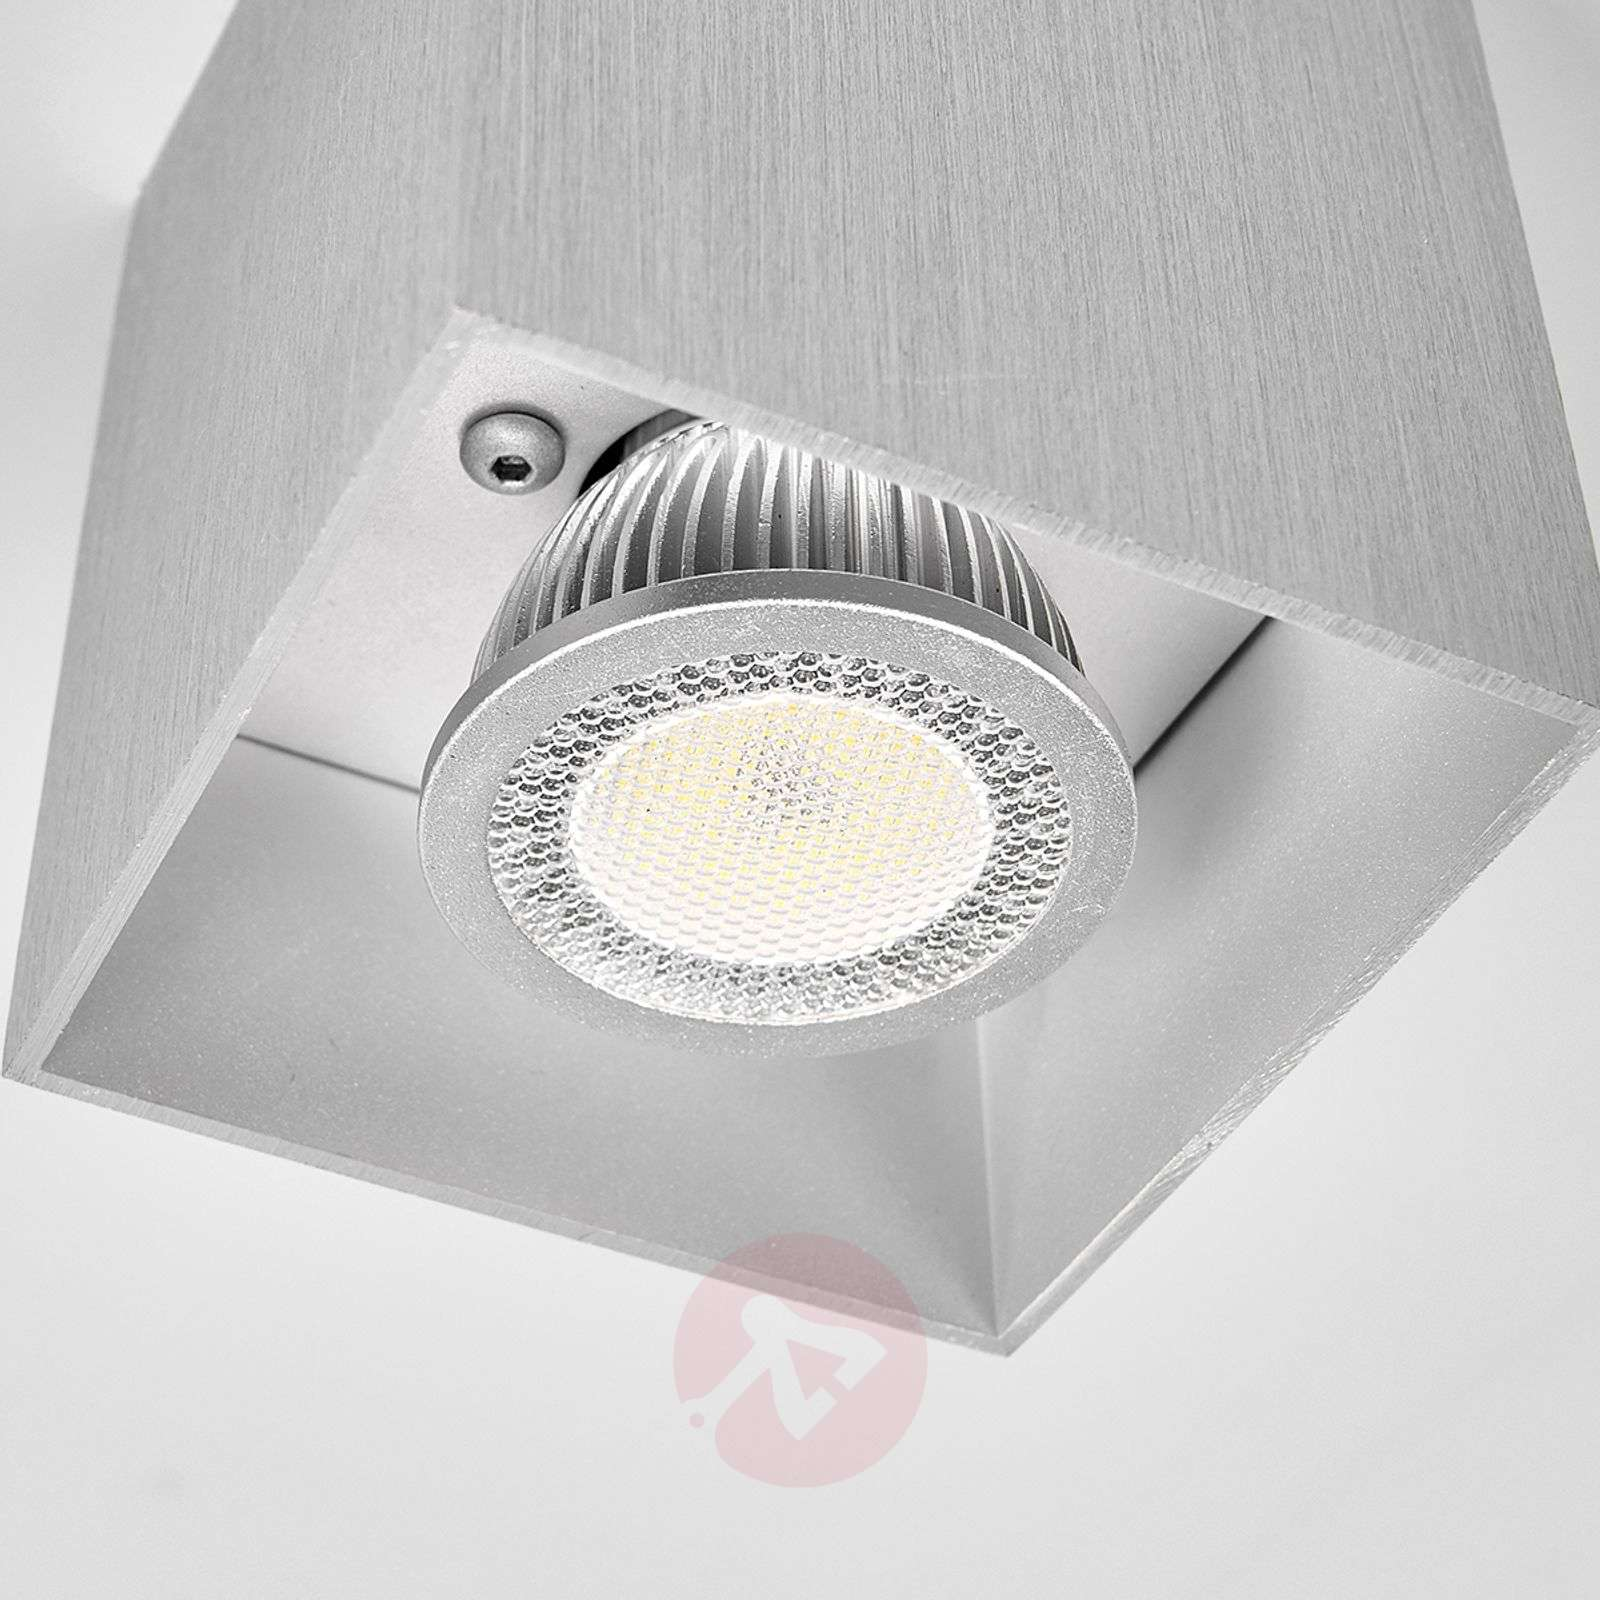 Aluminium surface mounted ceiling lamp carson sq lights 9620710 01 aluminium surface mounted ceiling lamp carson sq aloadofball Image collections